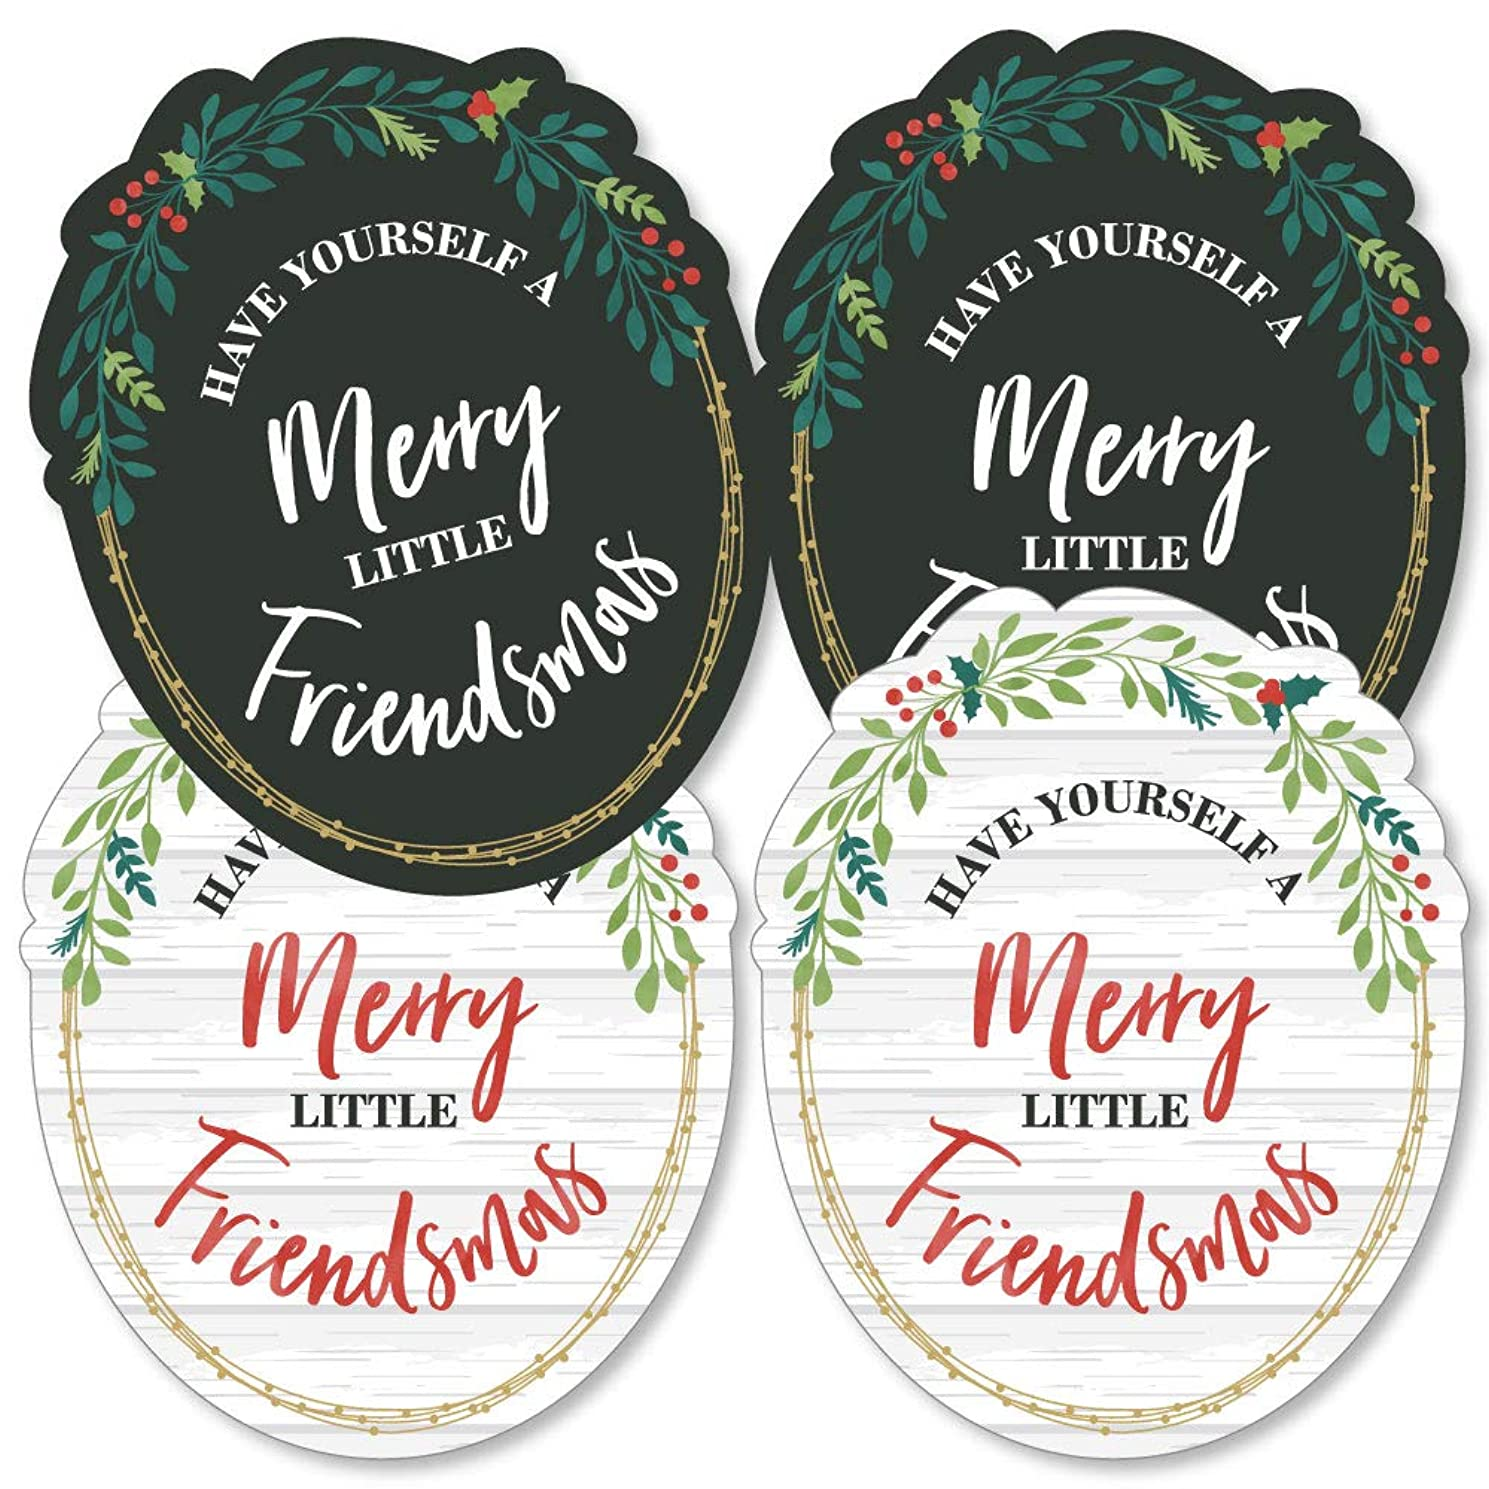 Rustic Merry Friendsmas - Wreath Decorations DIY Friends Christmas Party Essentials - Set of 20